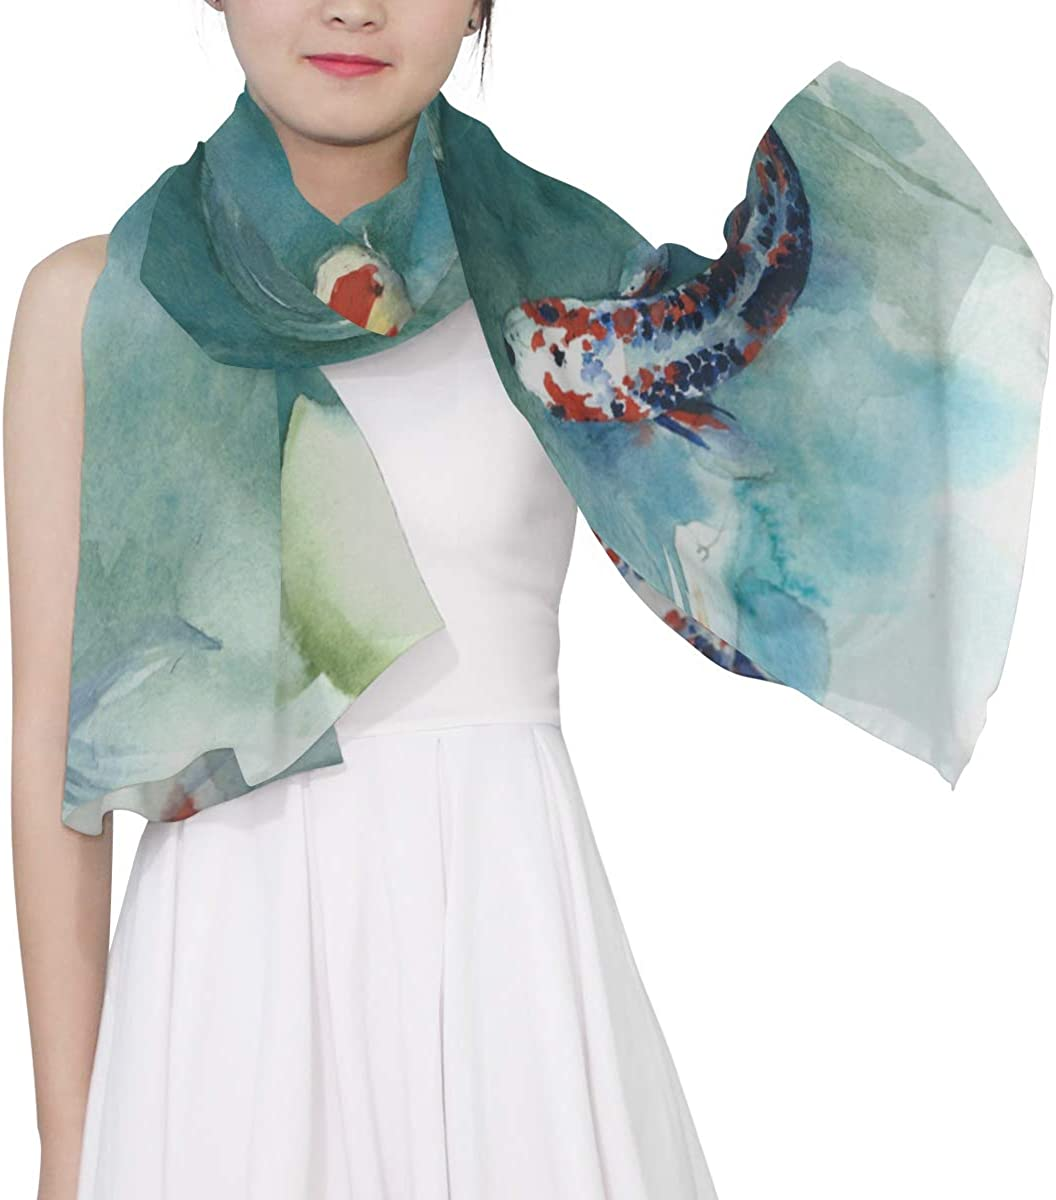 Auspicious Koi Painting Unique Fashion Scarf For Women Lightweight Fashion Fall Winter Print Scarves Shawl Wraps Gifts For Early Spring